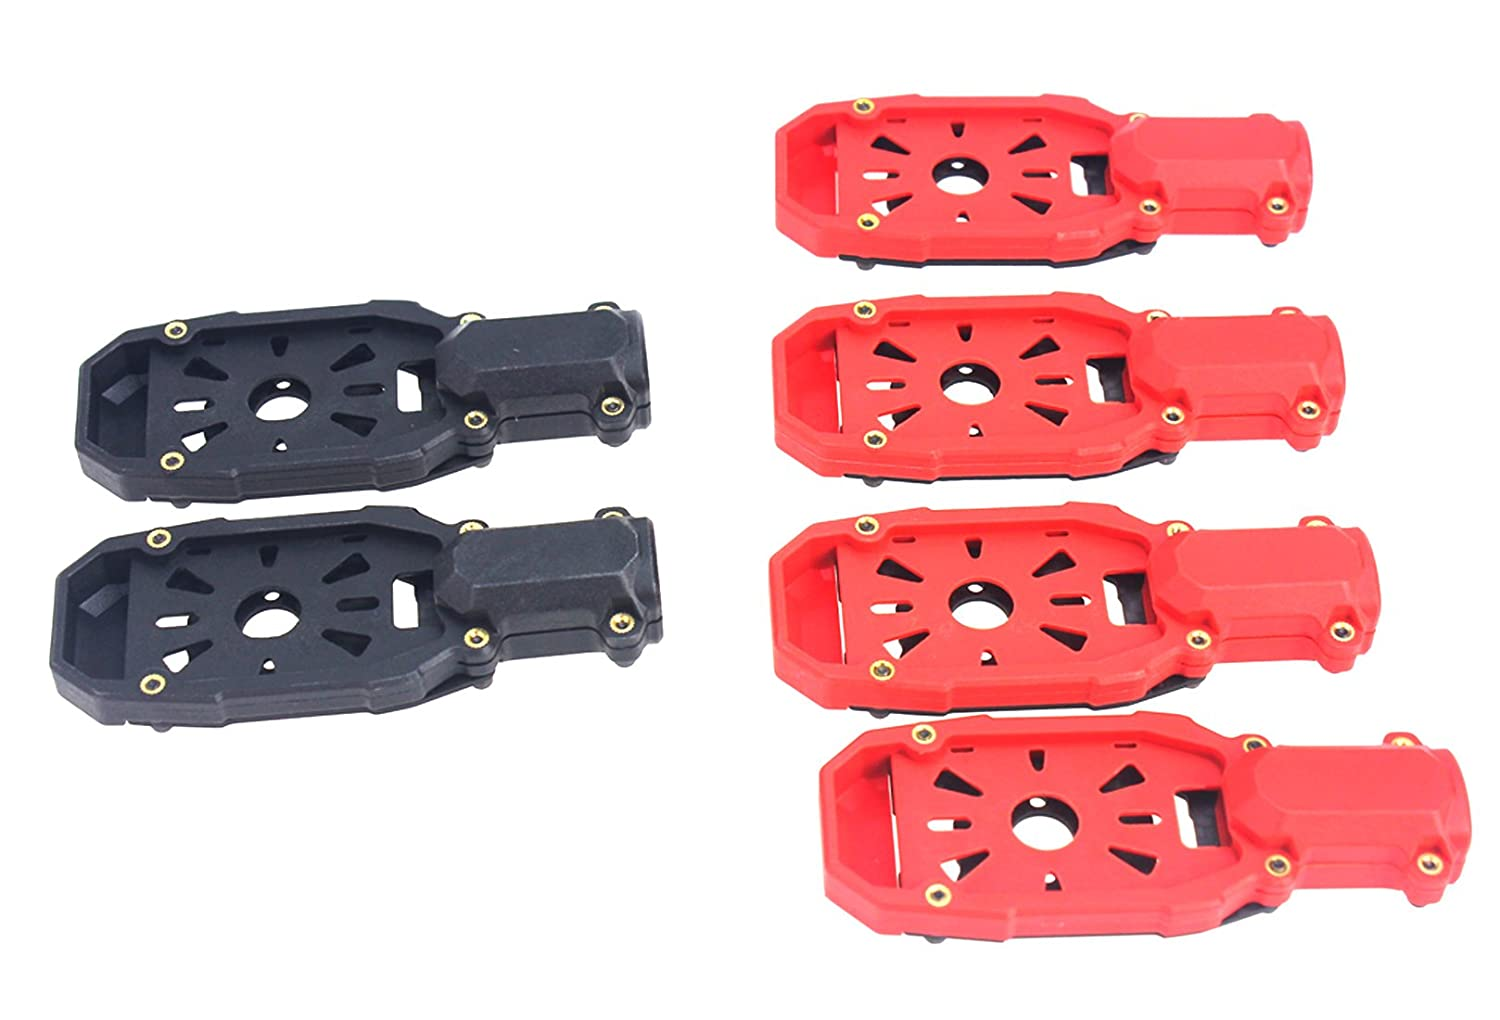 Tarot 6Pcs Tarot Dia 16mm Multi-axis Clamp Type Motor Mount Plate Holder TL68B25/26 for RC Hexacopter DIY Multicopter